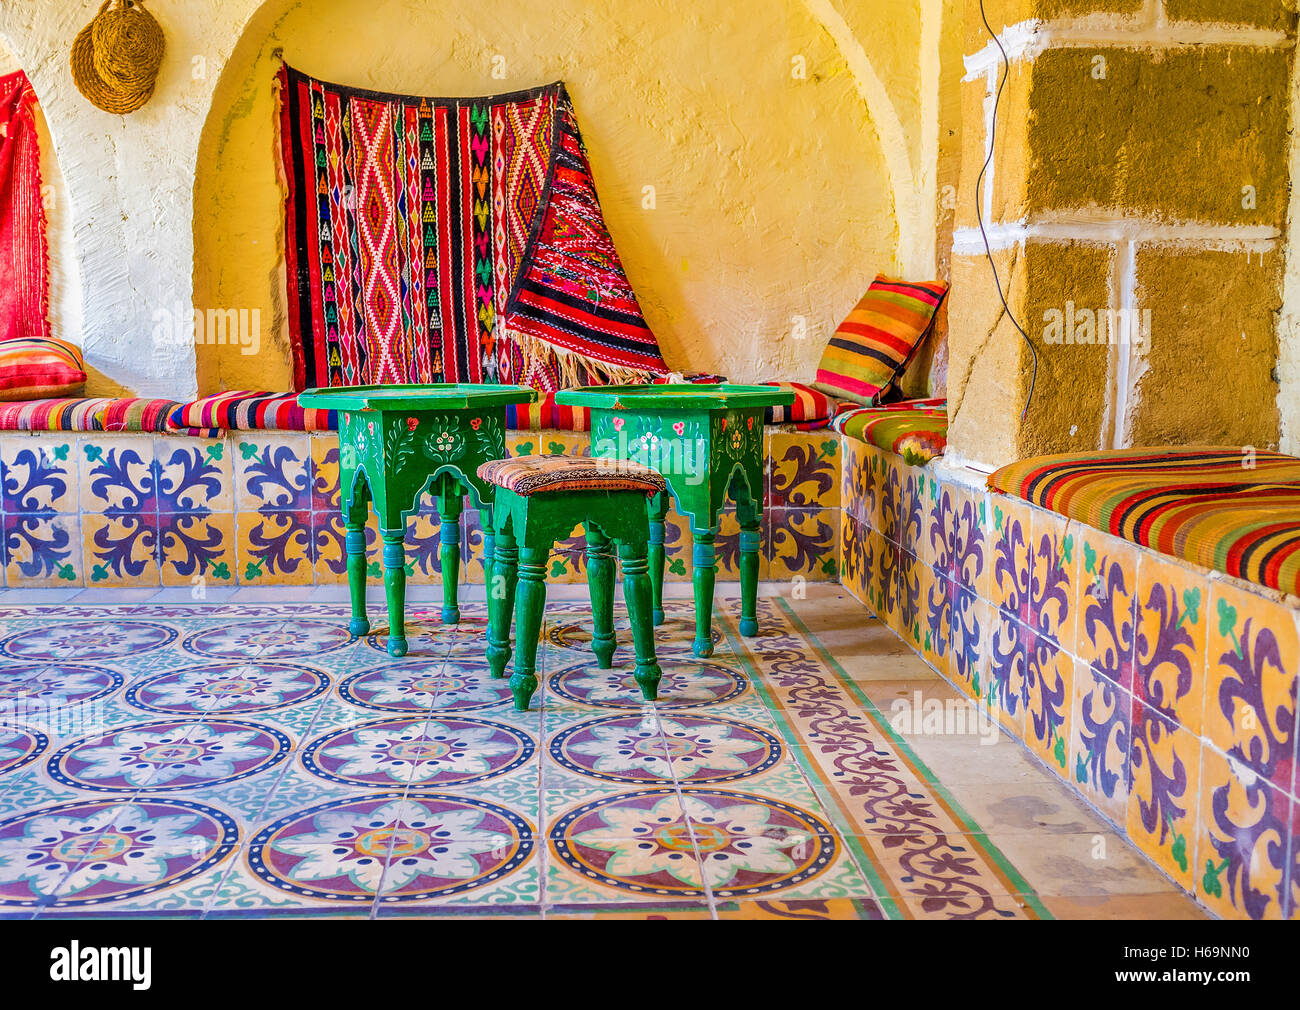 Magnificent 16X32 Ceiling Tiles Tall 18 Inch Floor Tile Round 18 X 18 Ceramic Tile 20 X 20 Floor Tile Patterns Young 24 X 24 Ceiling Tiles Brown3 X 12 Subway Tile The Interior Of Arabic Restaurant With The Beautiful Glazed Tile ..